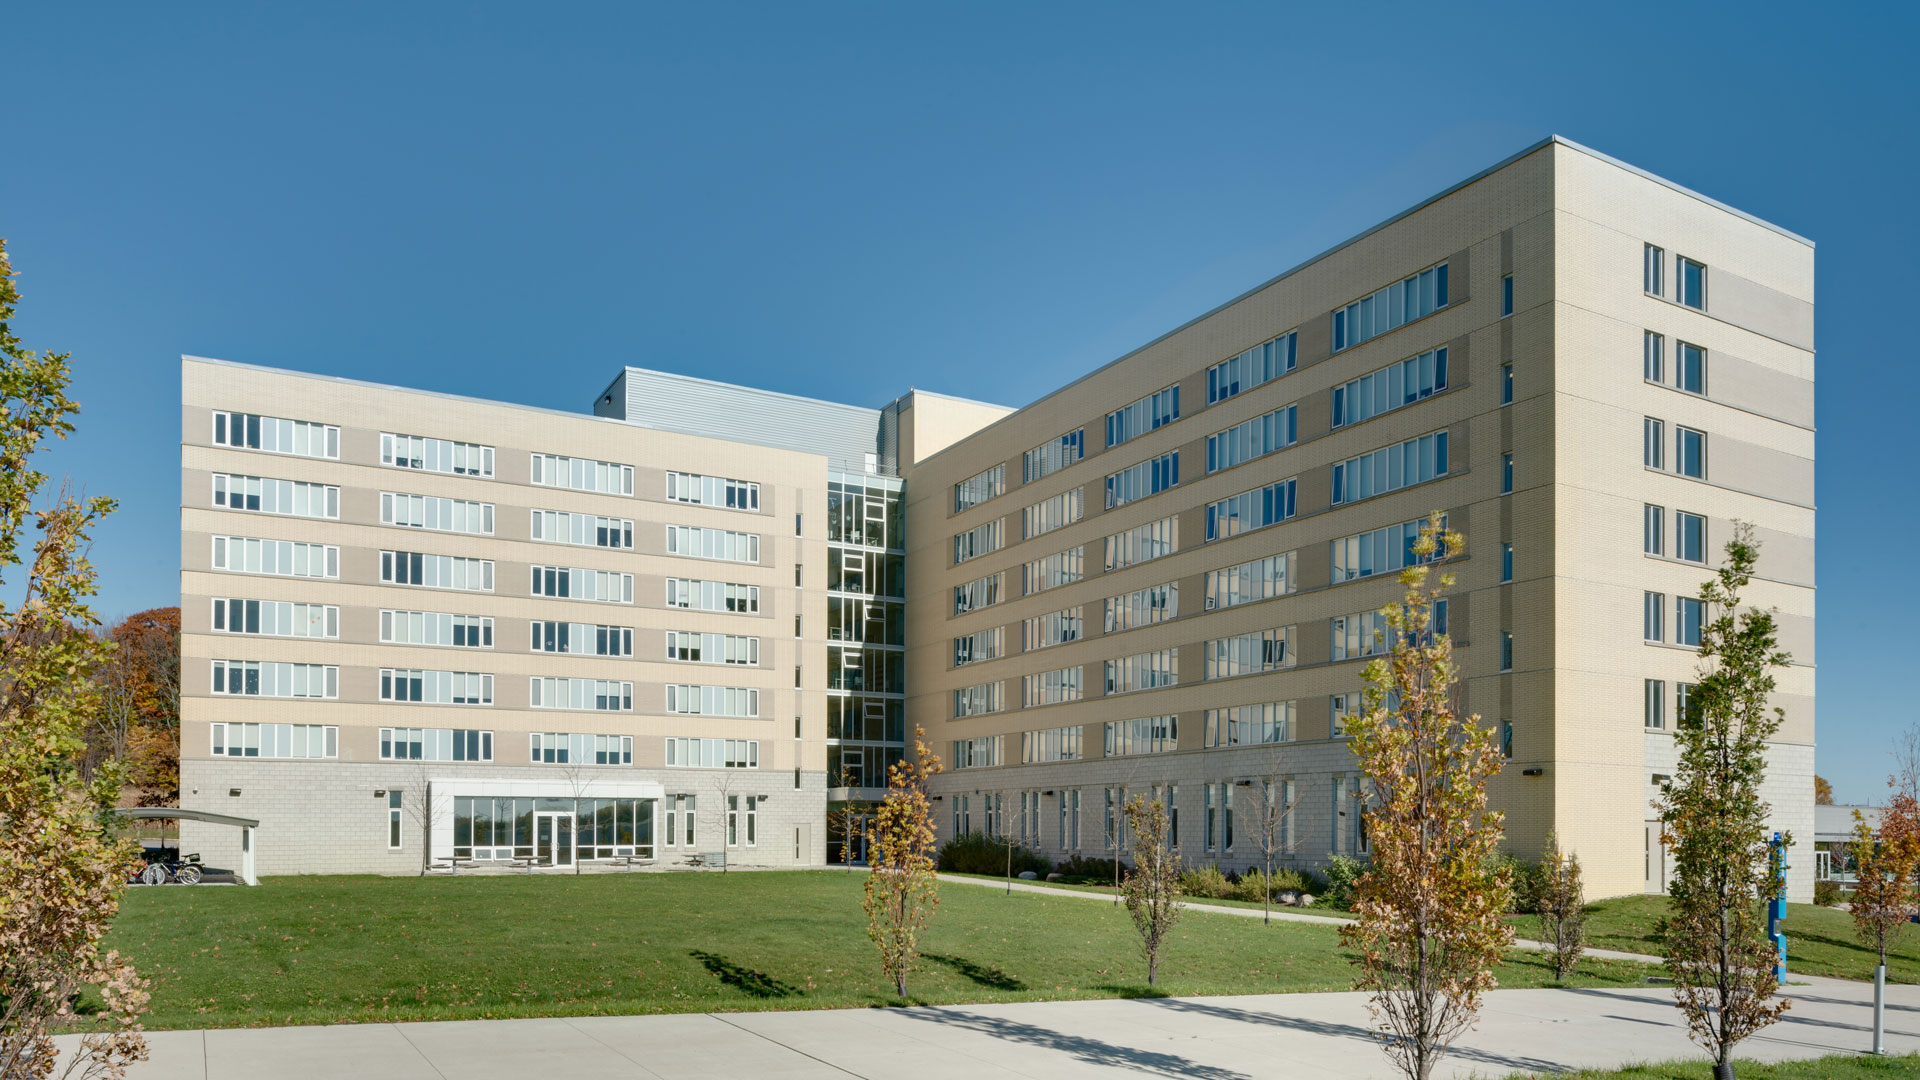 Exterior photo of the Student Residence building with a front lawn